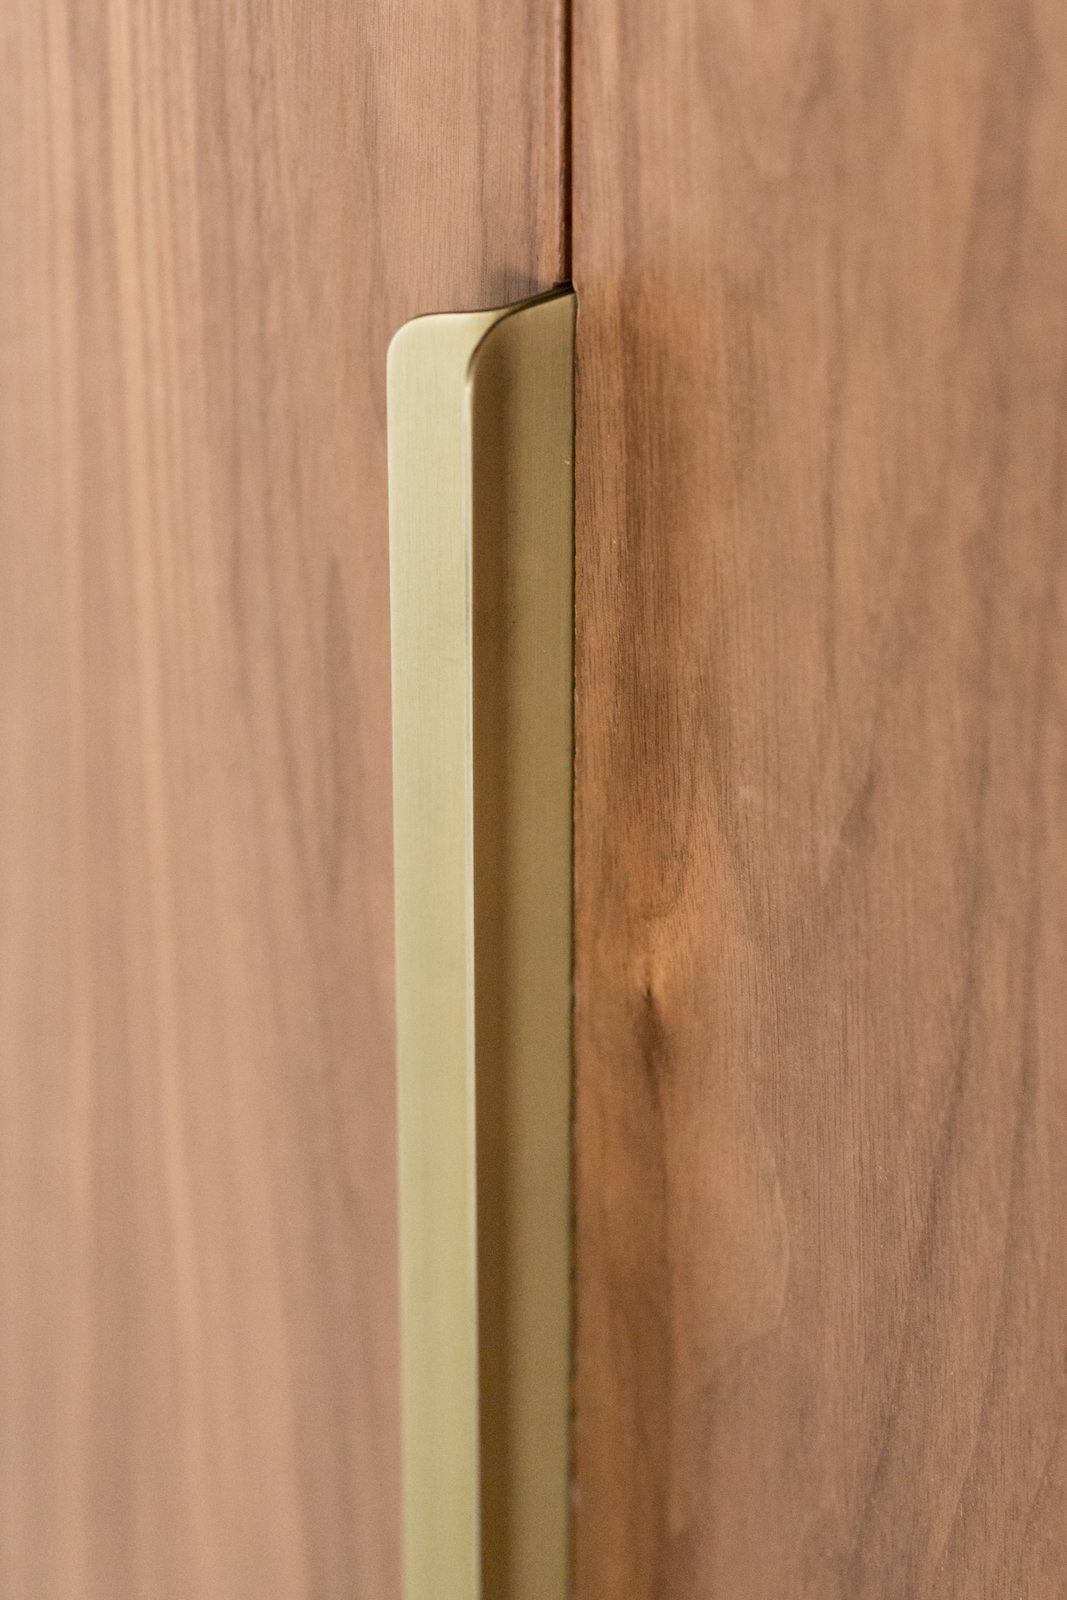 The door pulls were also custom designed and locally fabricated from brushed brass.